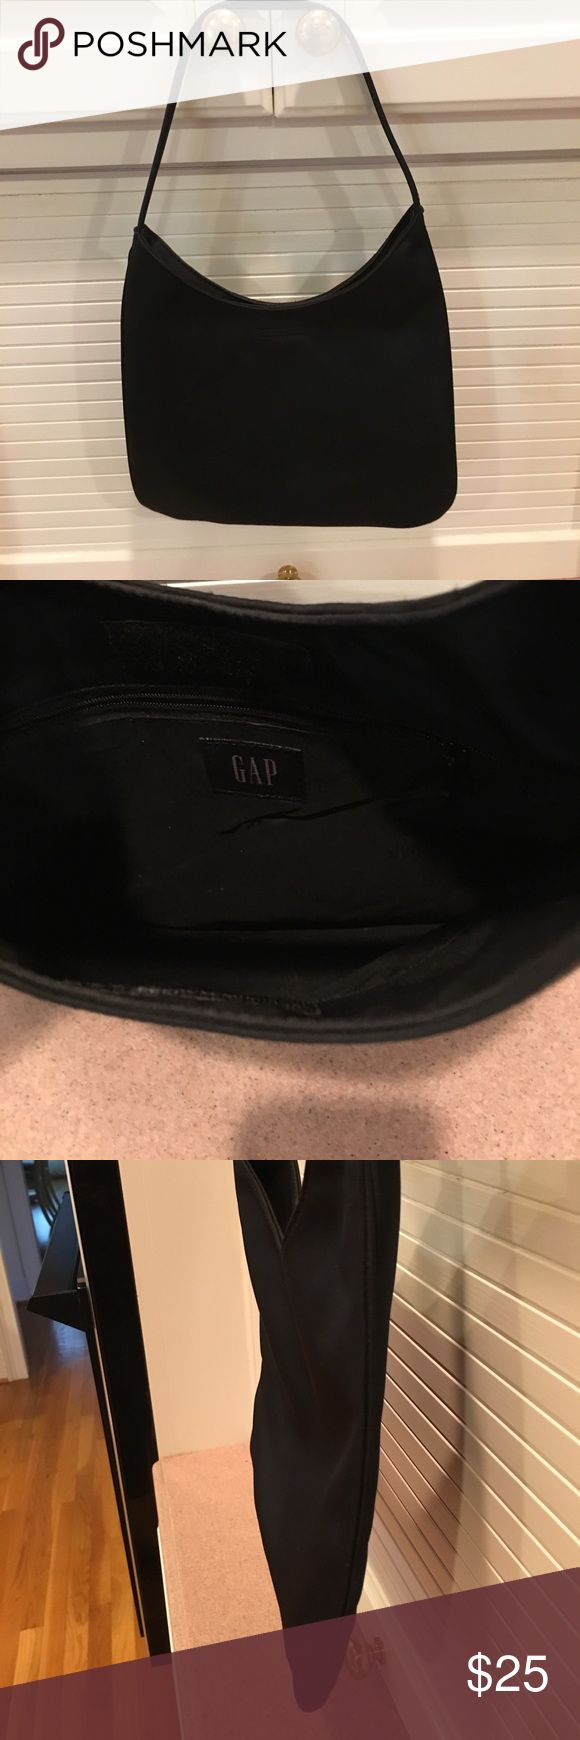 """GAP Purse Used, small purse, can be carried on shoulder. Velcro closing , Inside small zip pocket. 8 3/4"""" from center to bottom;          10 3/4 """" from strap to bottom. Opens to 5 3/4"""";  16"""" shoulder or hand strap.                       Good condition as not used very much.  No damage to inside at all. GAP Bags Mini Bags"""